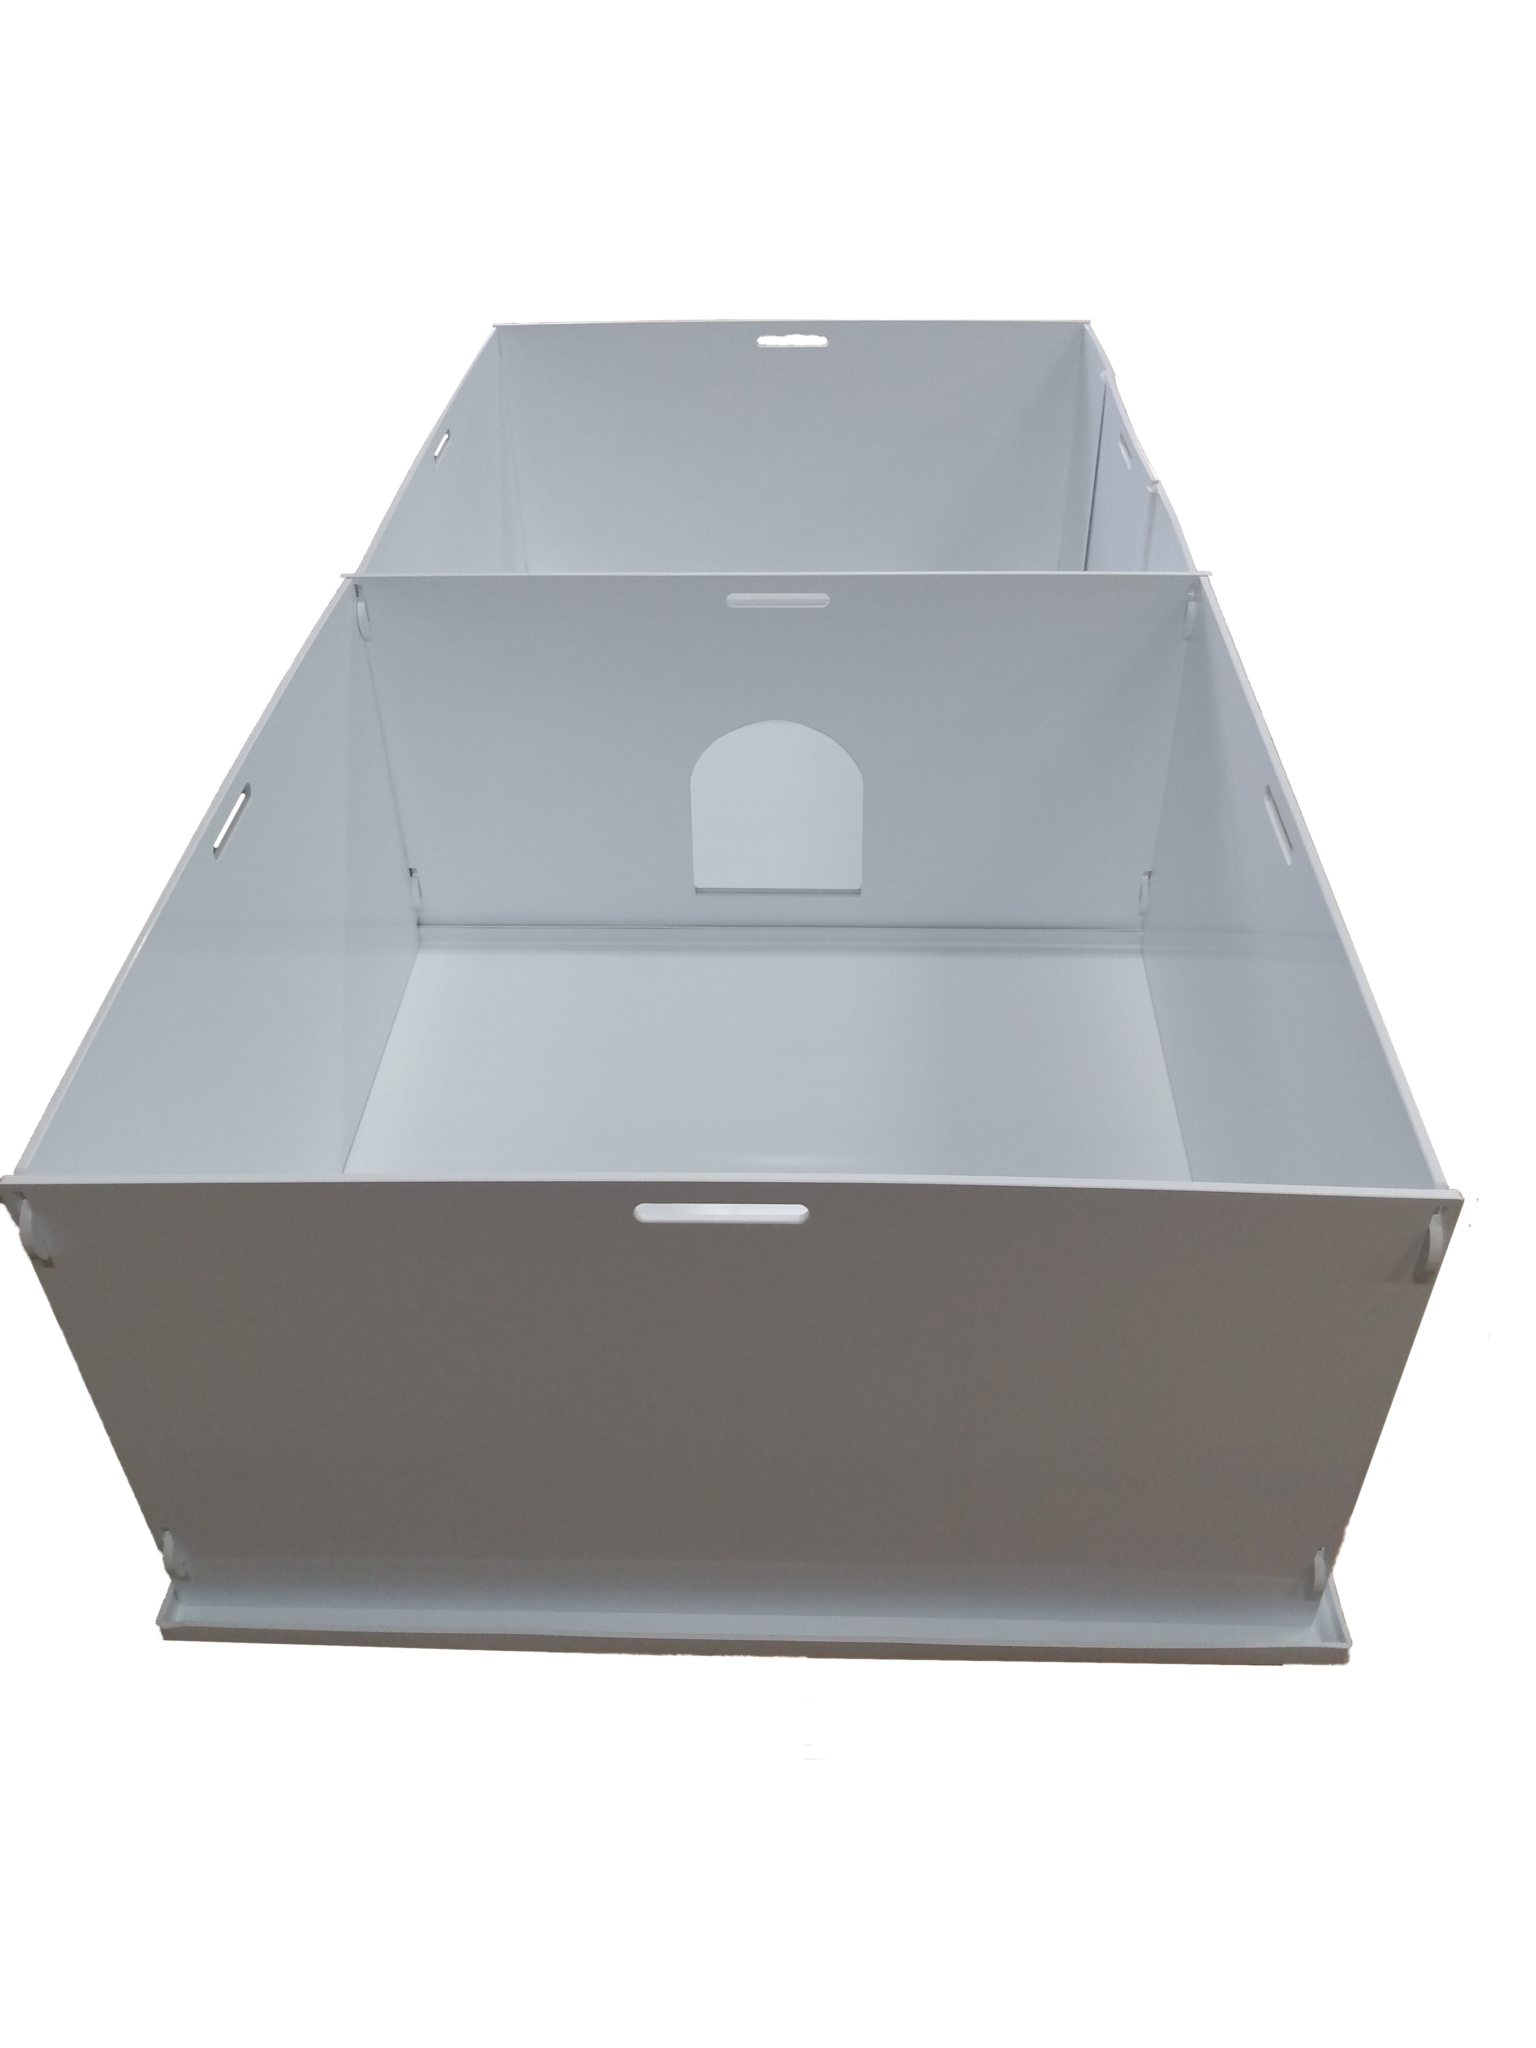 pettech-90-whelping-box-set-back-view-with-door